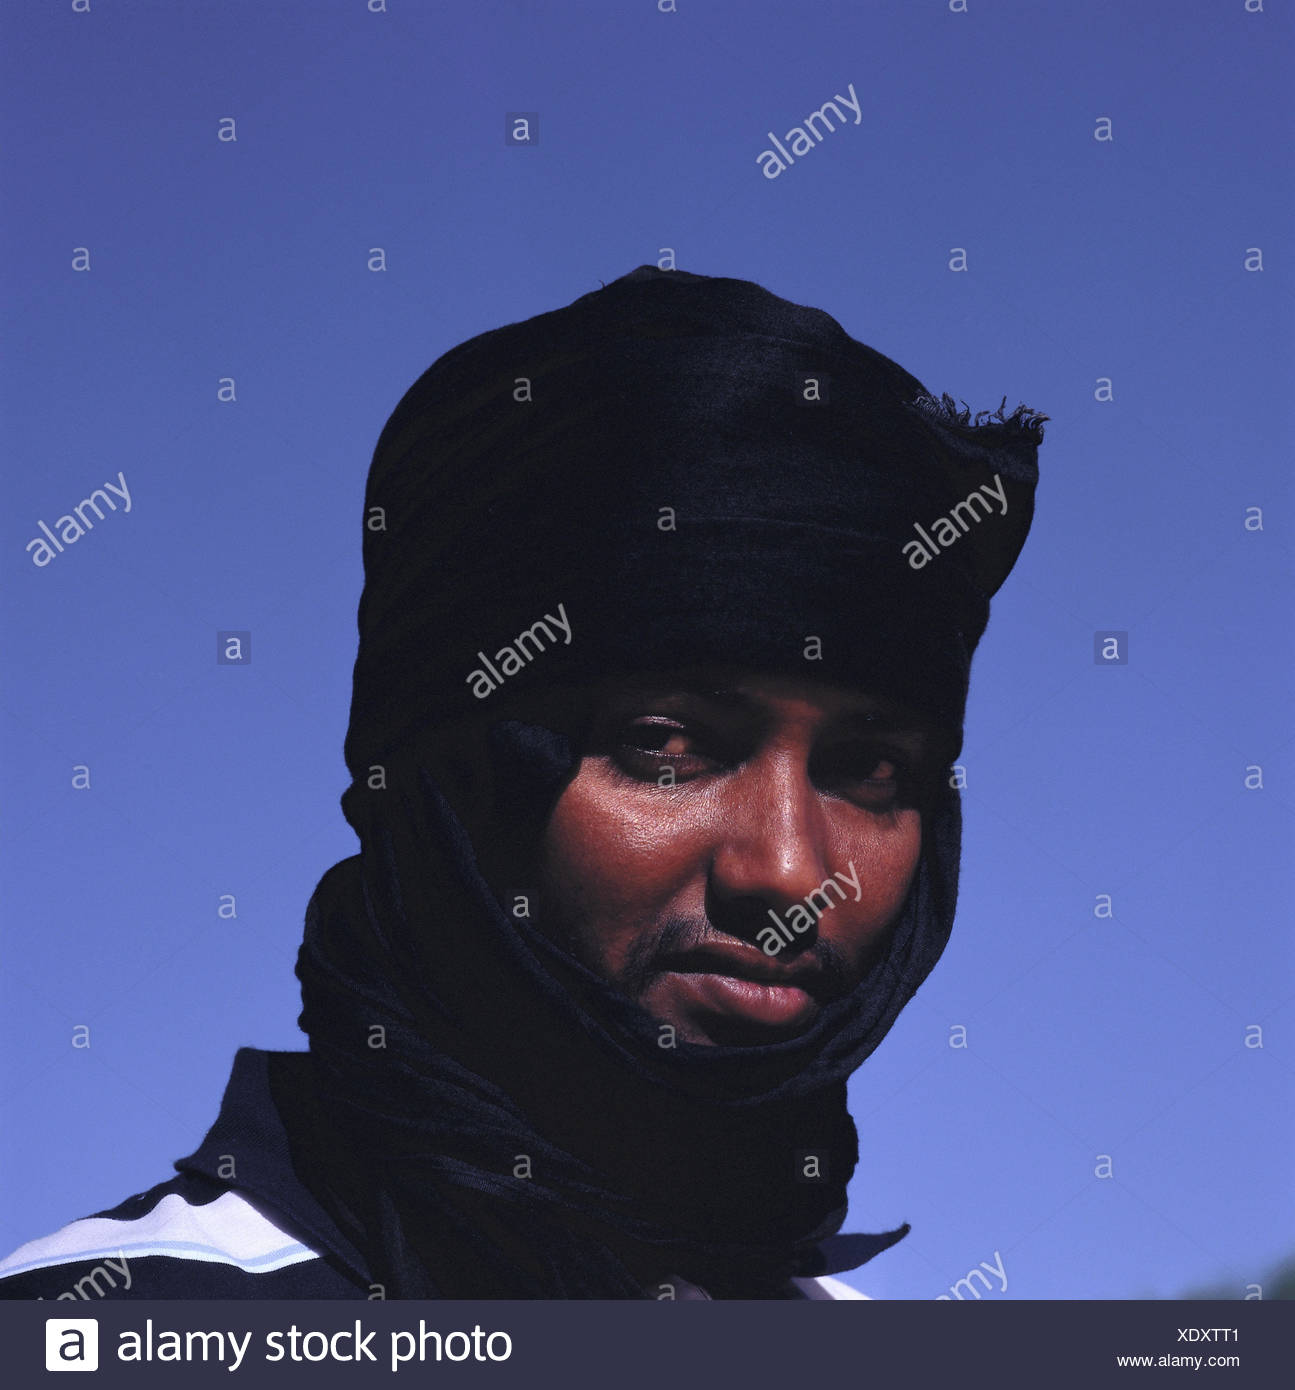 Mauritania, man, turban, portrait, Africa, West, Africa, person, Mauritanian, Moor, dark-skinned, Mauritanian, headgear, beard, moustache, side glance, heaven, outside, - Stock Image